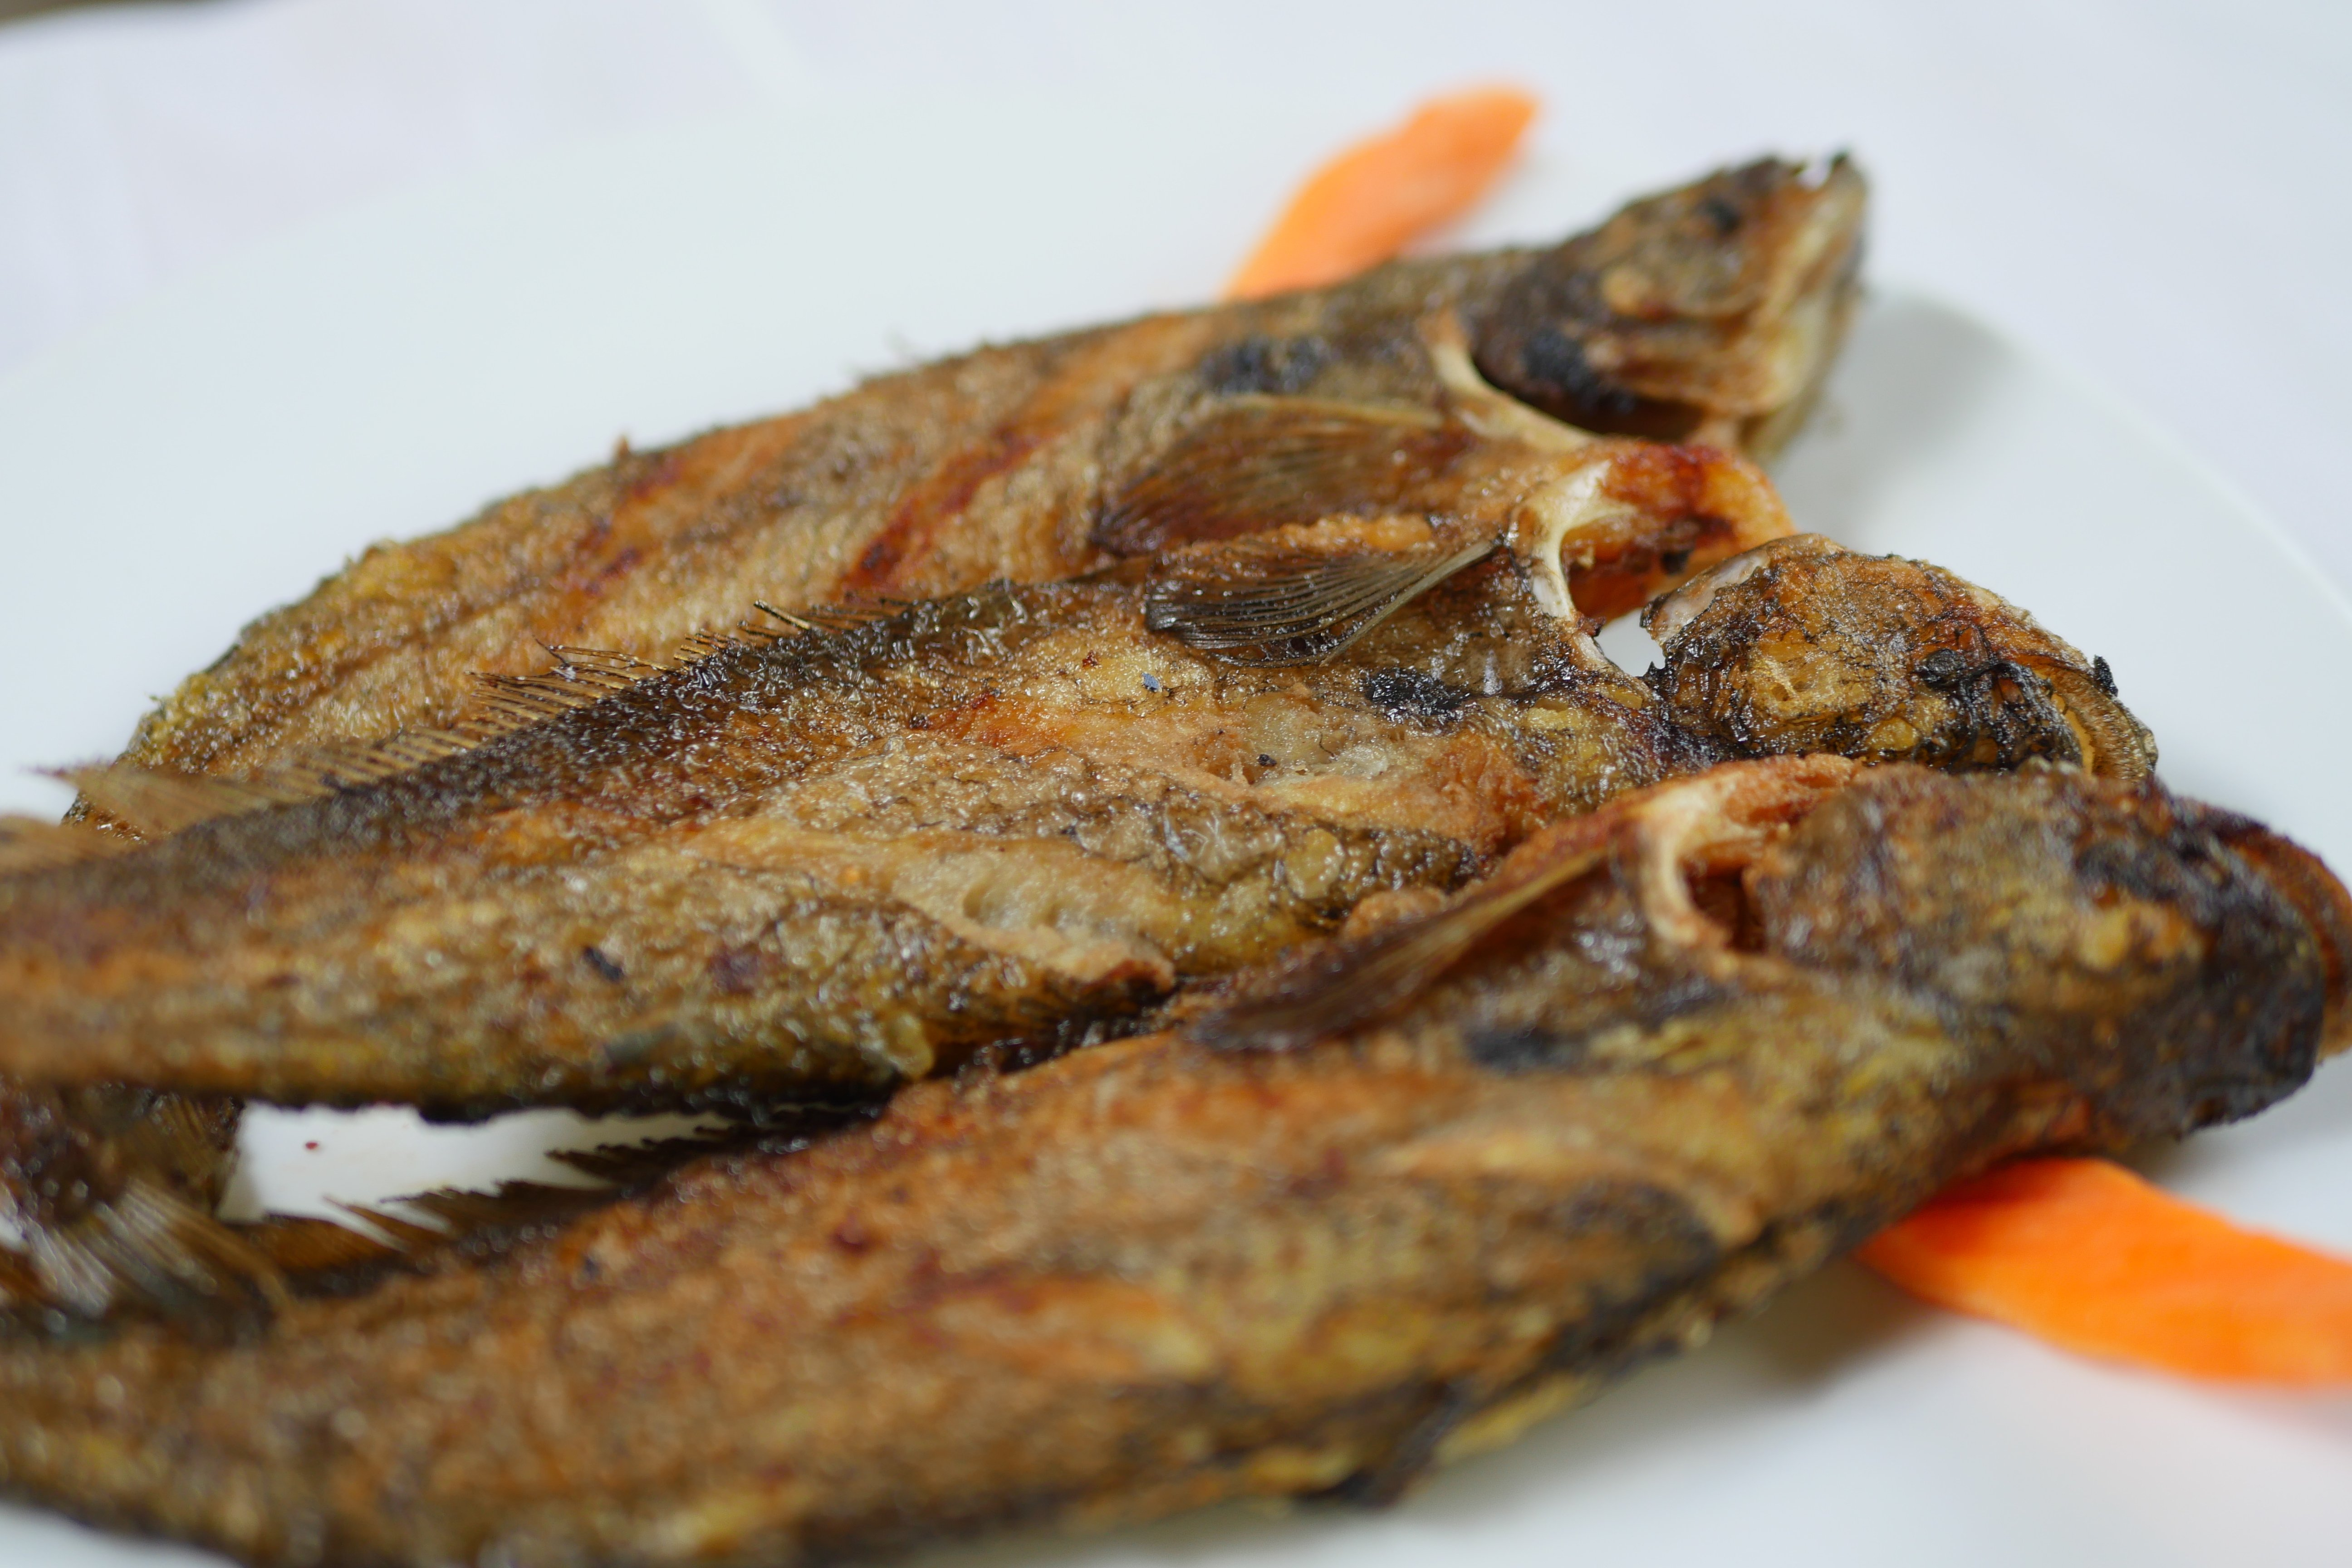 Fried river fish